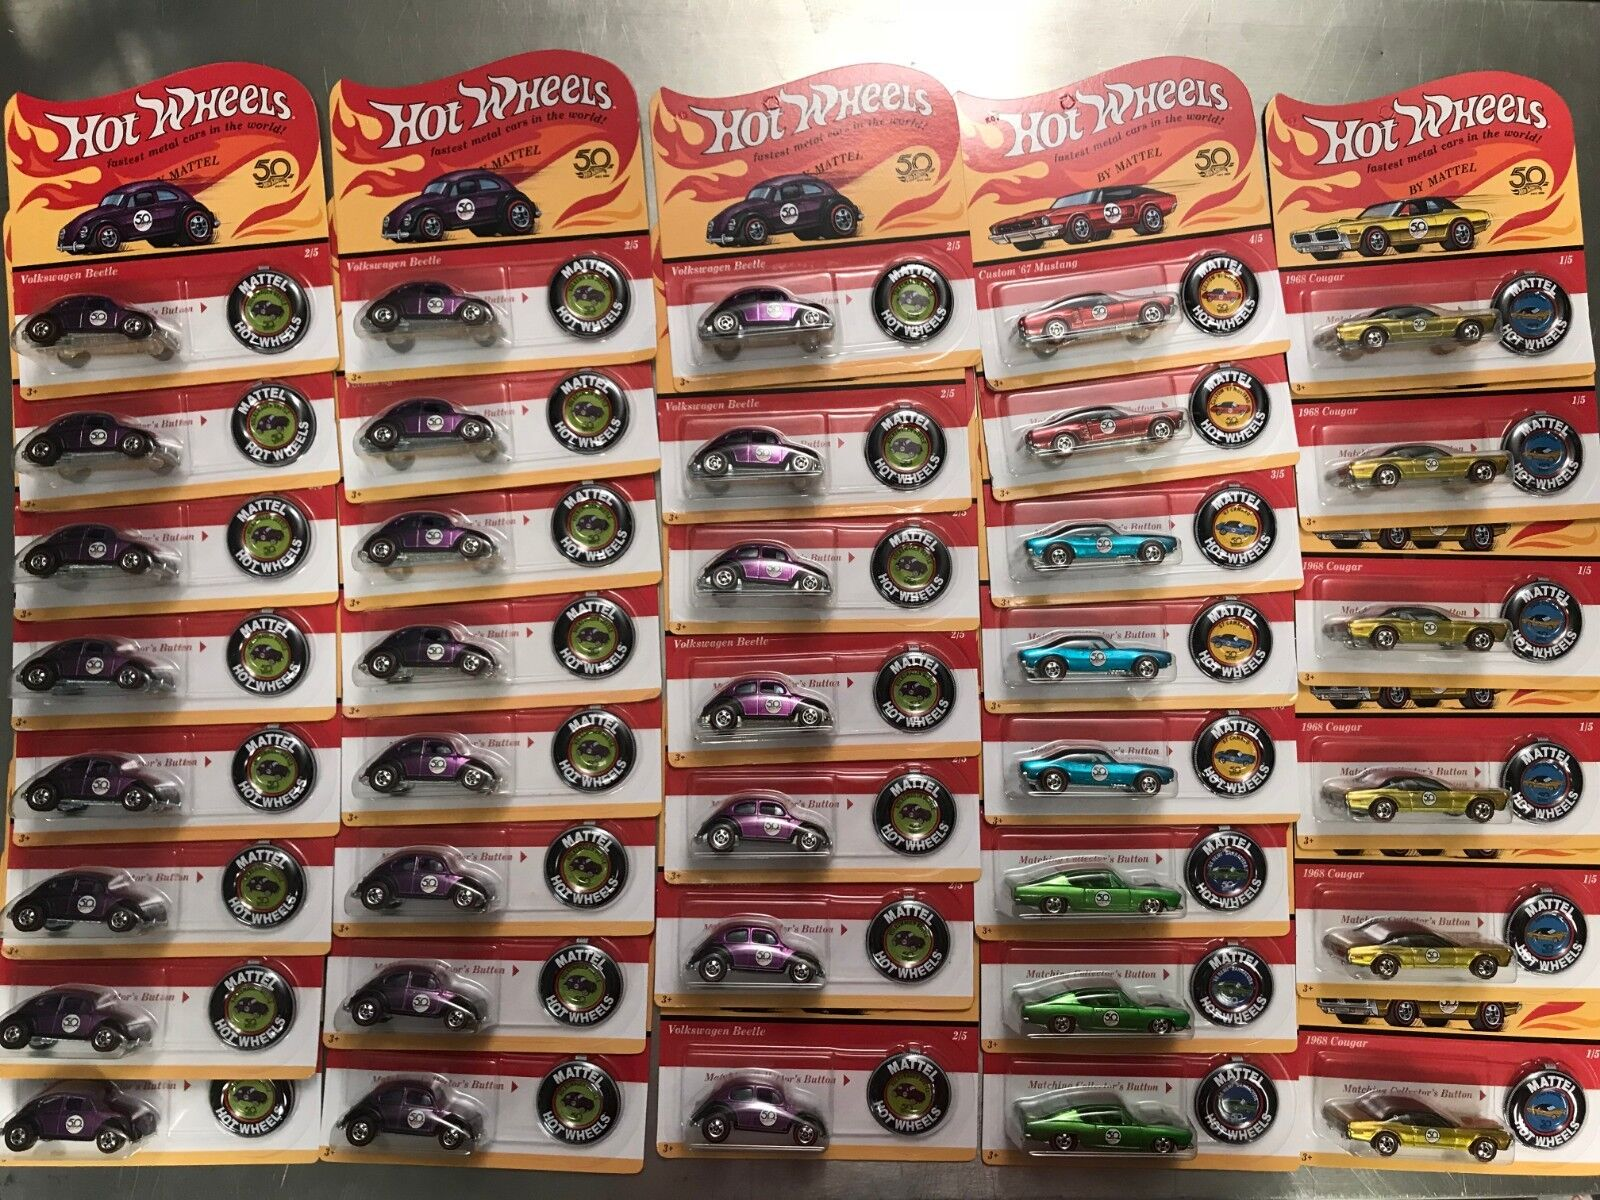 37 x hot wheels lot 50TH ANNIVERSAIRE CHEVY CAMARO MUSTANG VW Beetle rougeline